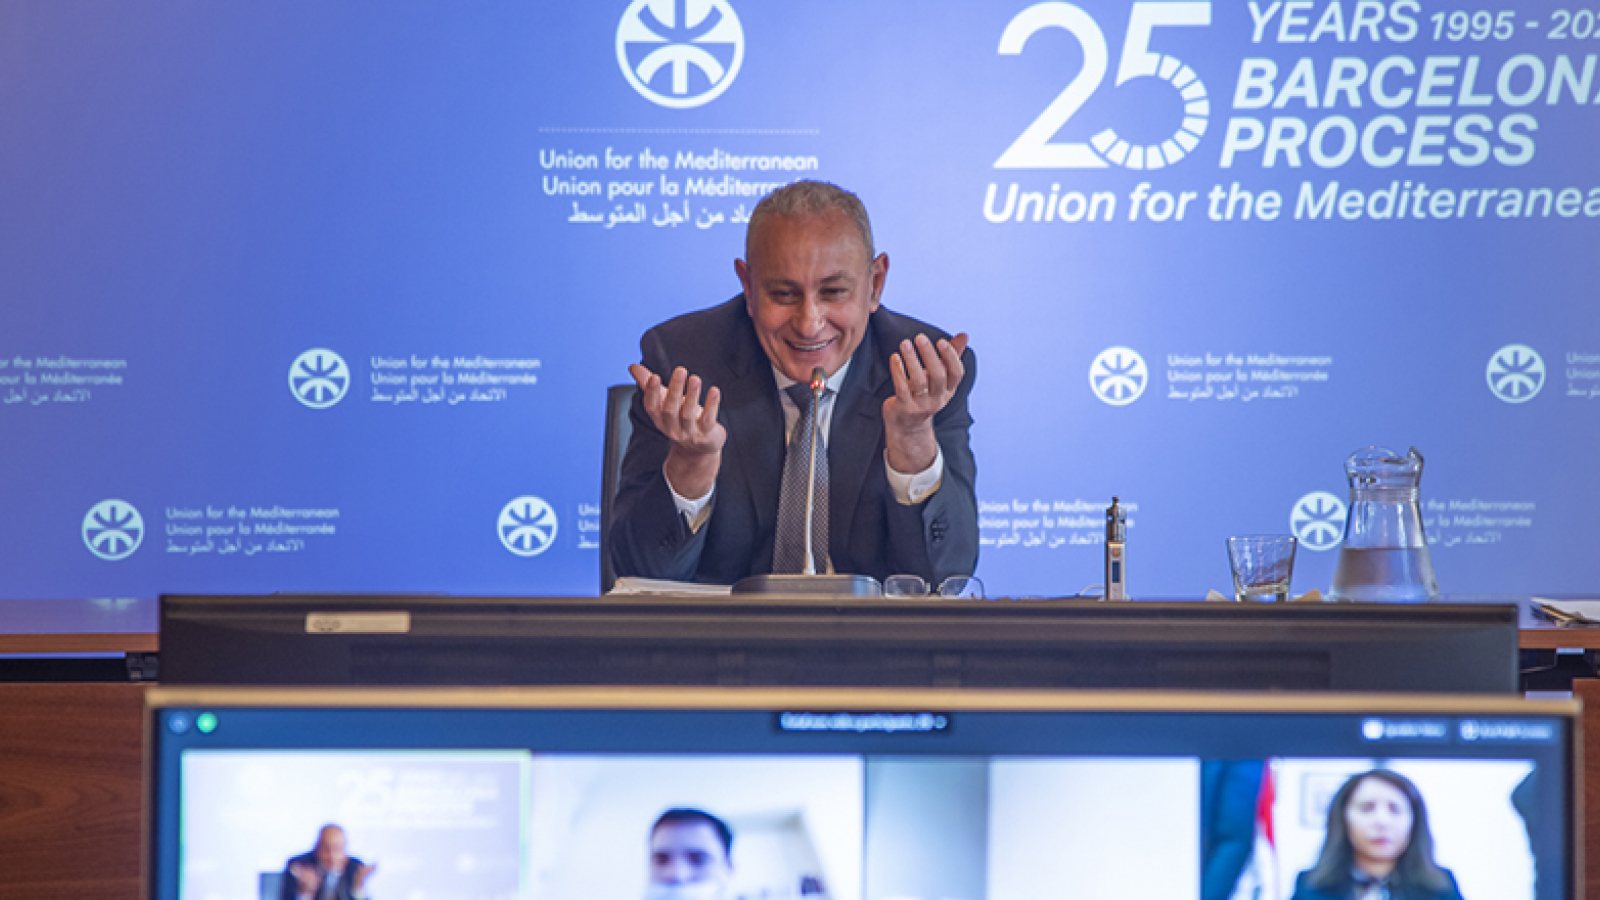 Sustainable urban development: Union for the Mediterranean Member States endorse region-wide initiative